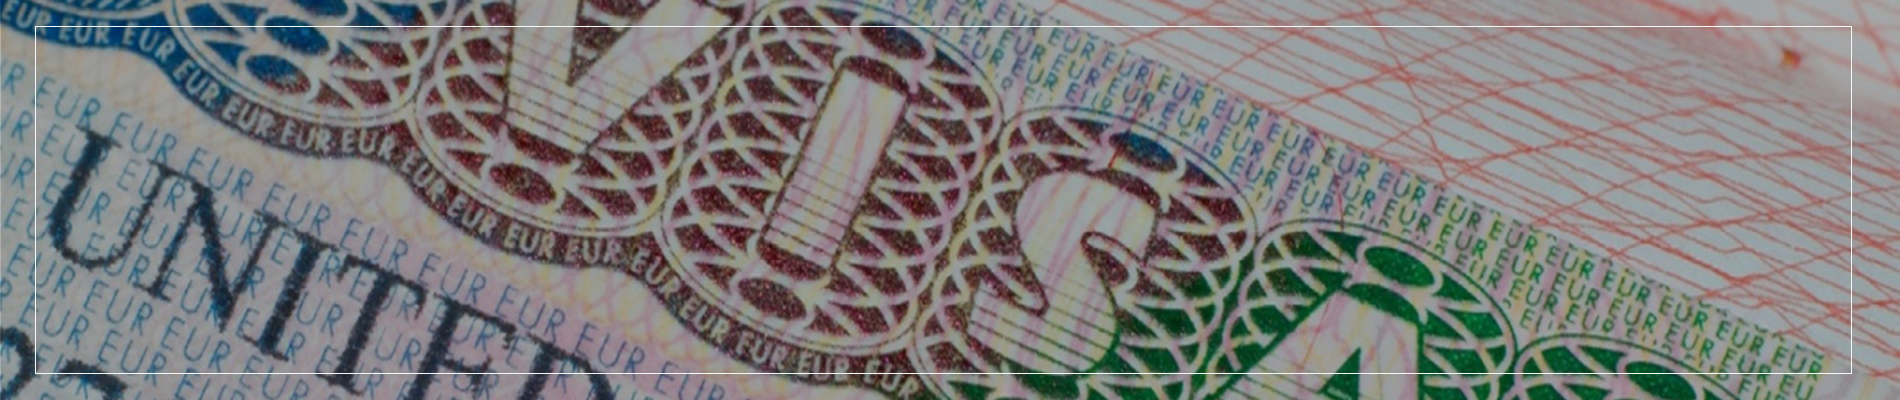 Turkish Passport Visa Free Countries